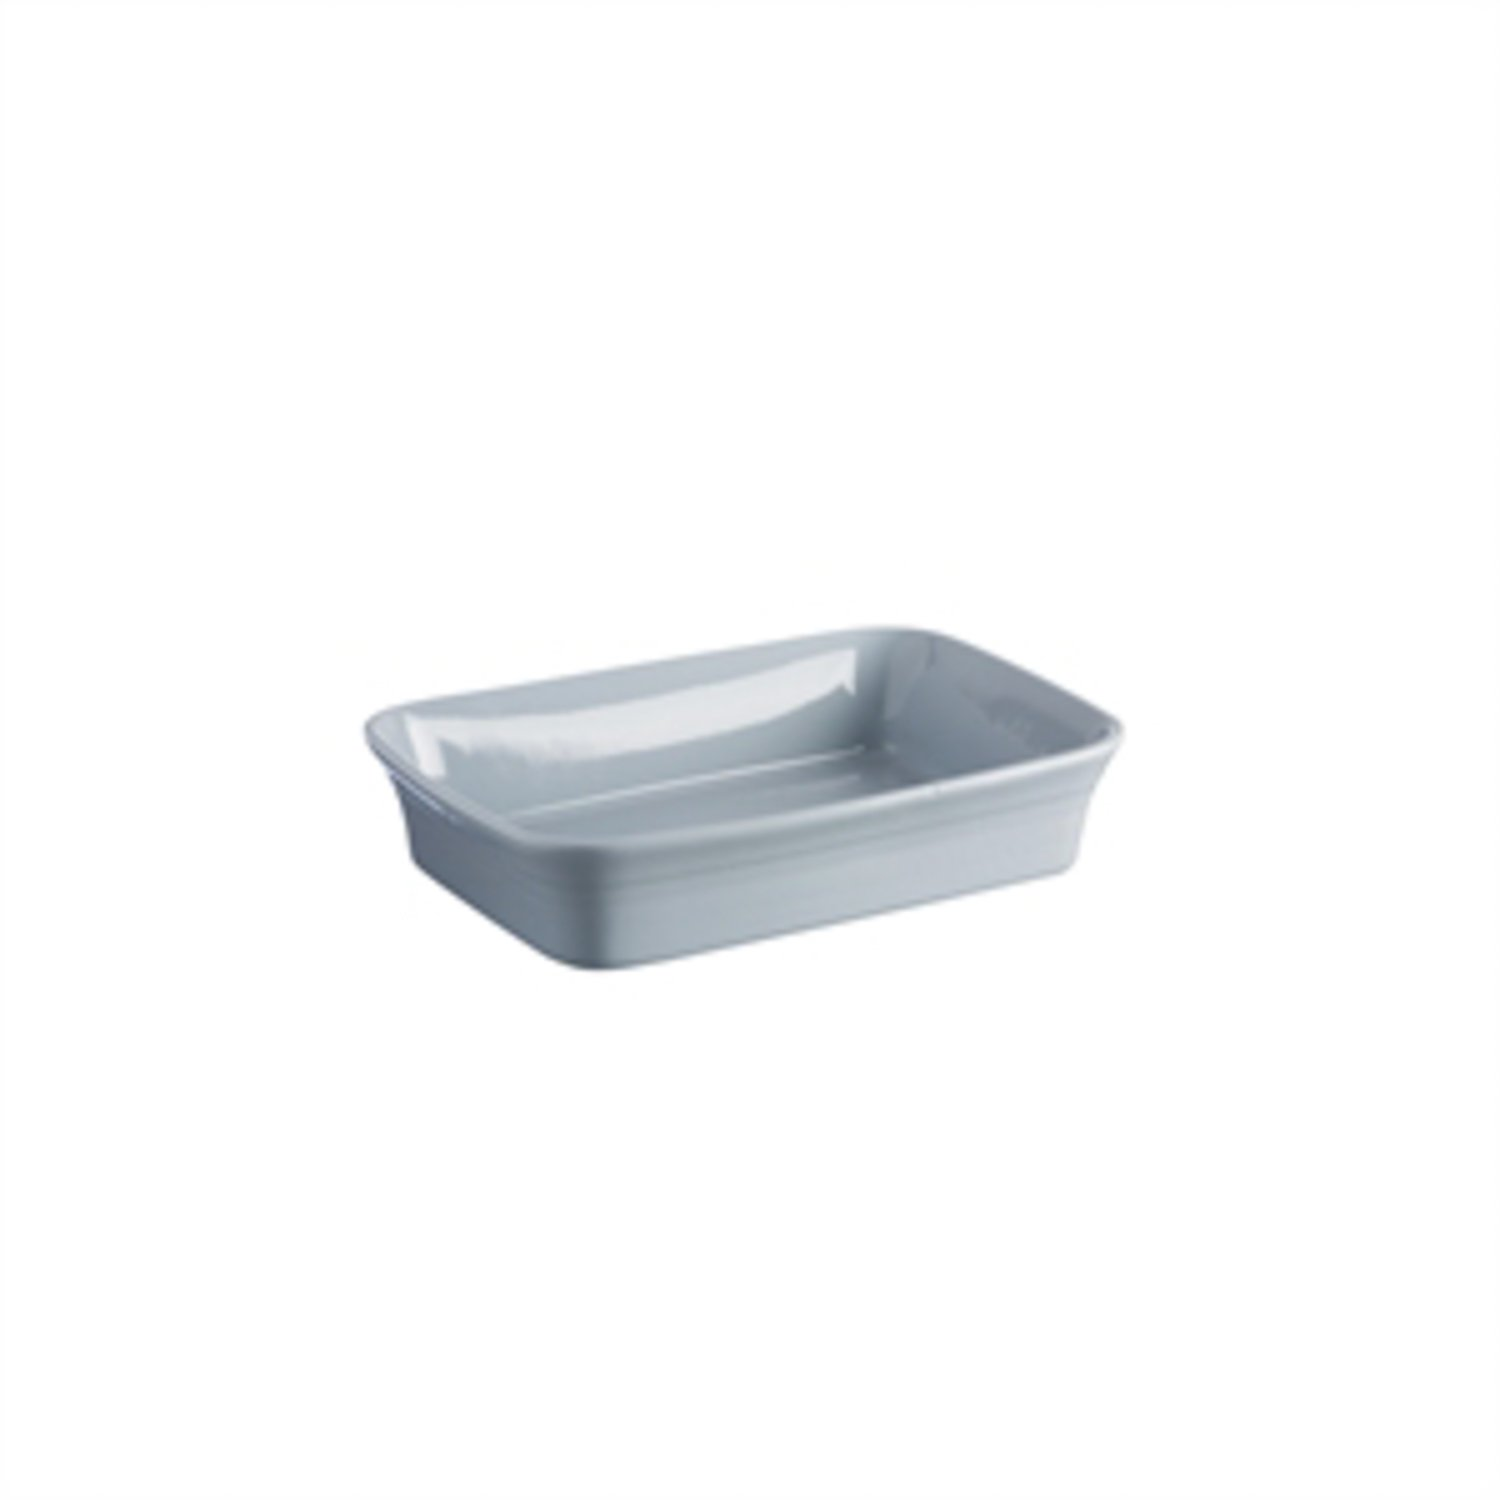 Mason Cash Classic Kitchen Rectangular Bakers, Set of 2 Essential Sizes, Durable Stoneware Goes from Oven to Table, Dishwasher, Microwave and Freezer Safe, Dark Gray Rayware Ltd 2001.926